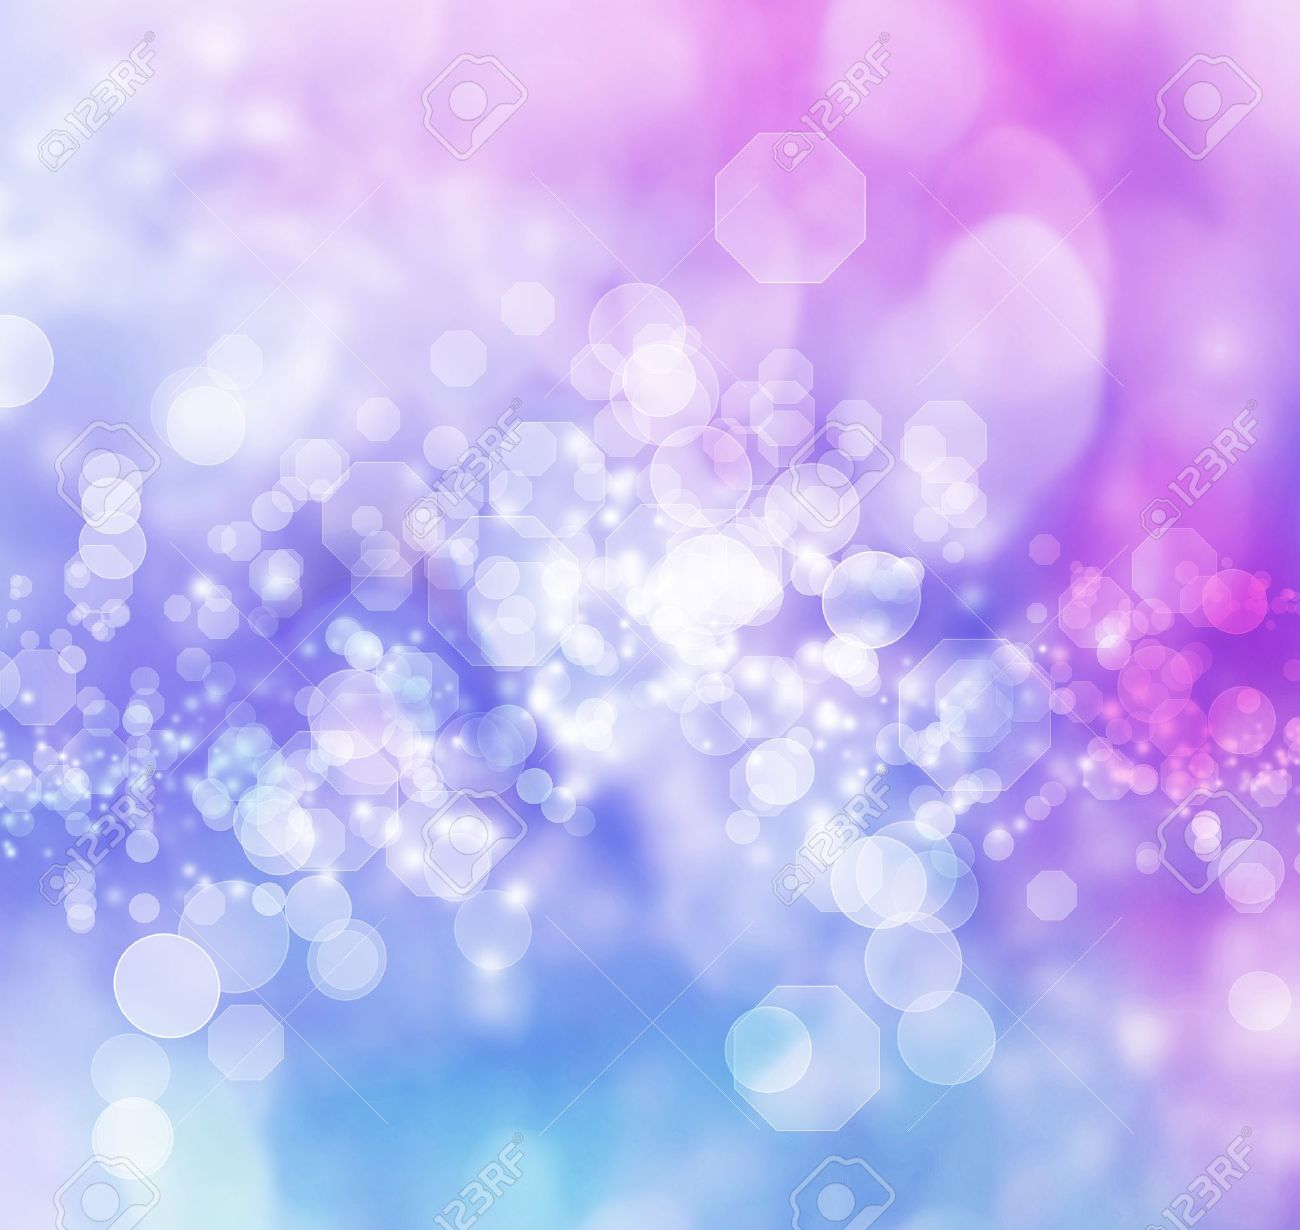 Blue and Purple Colored Abstract Lights Background Stock Photo - 20214988